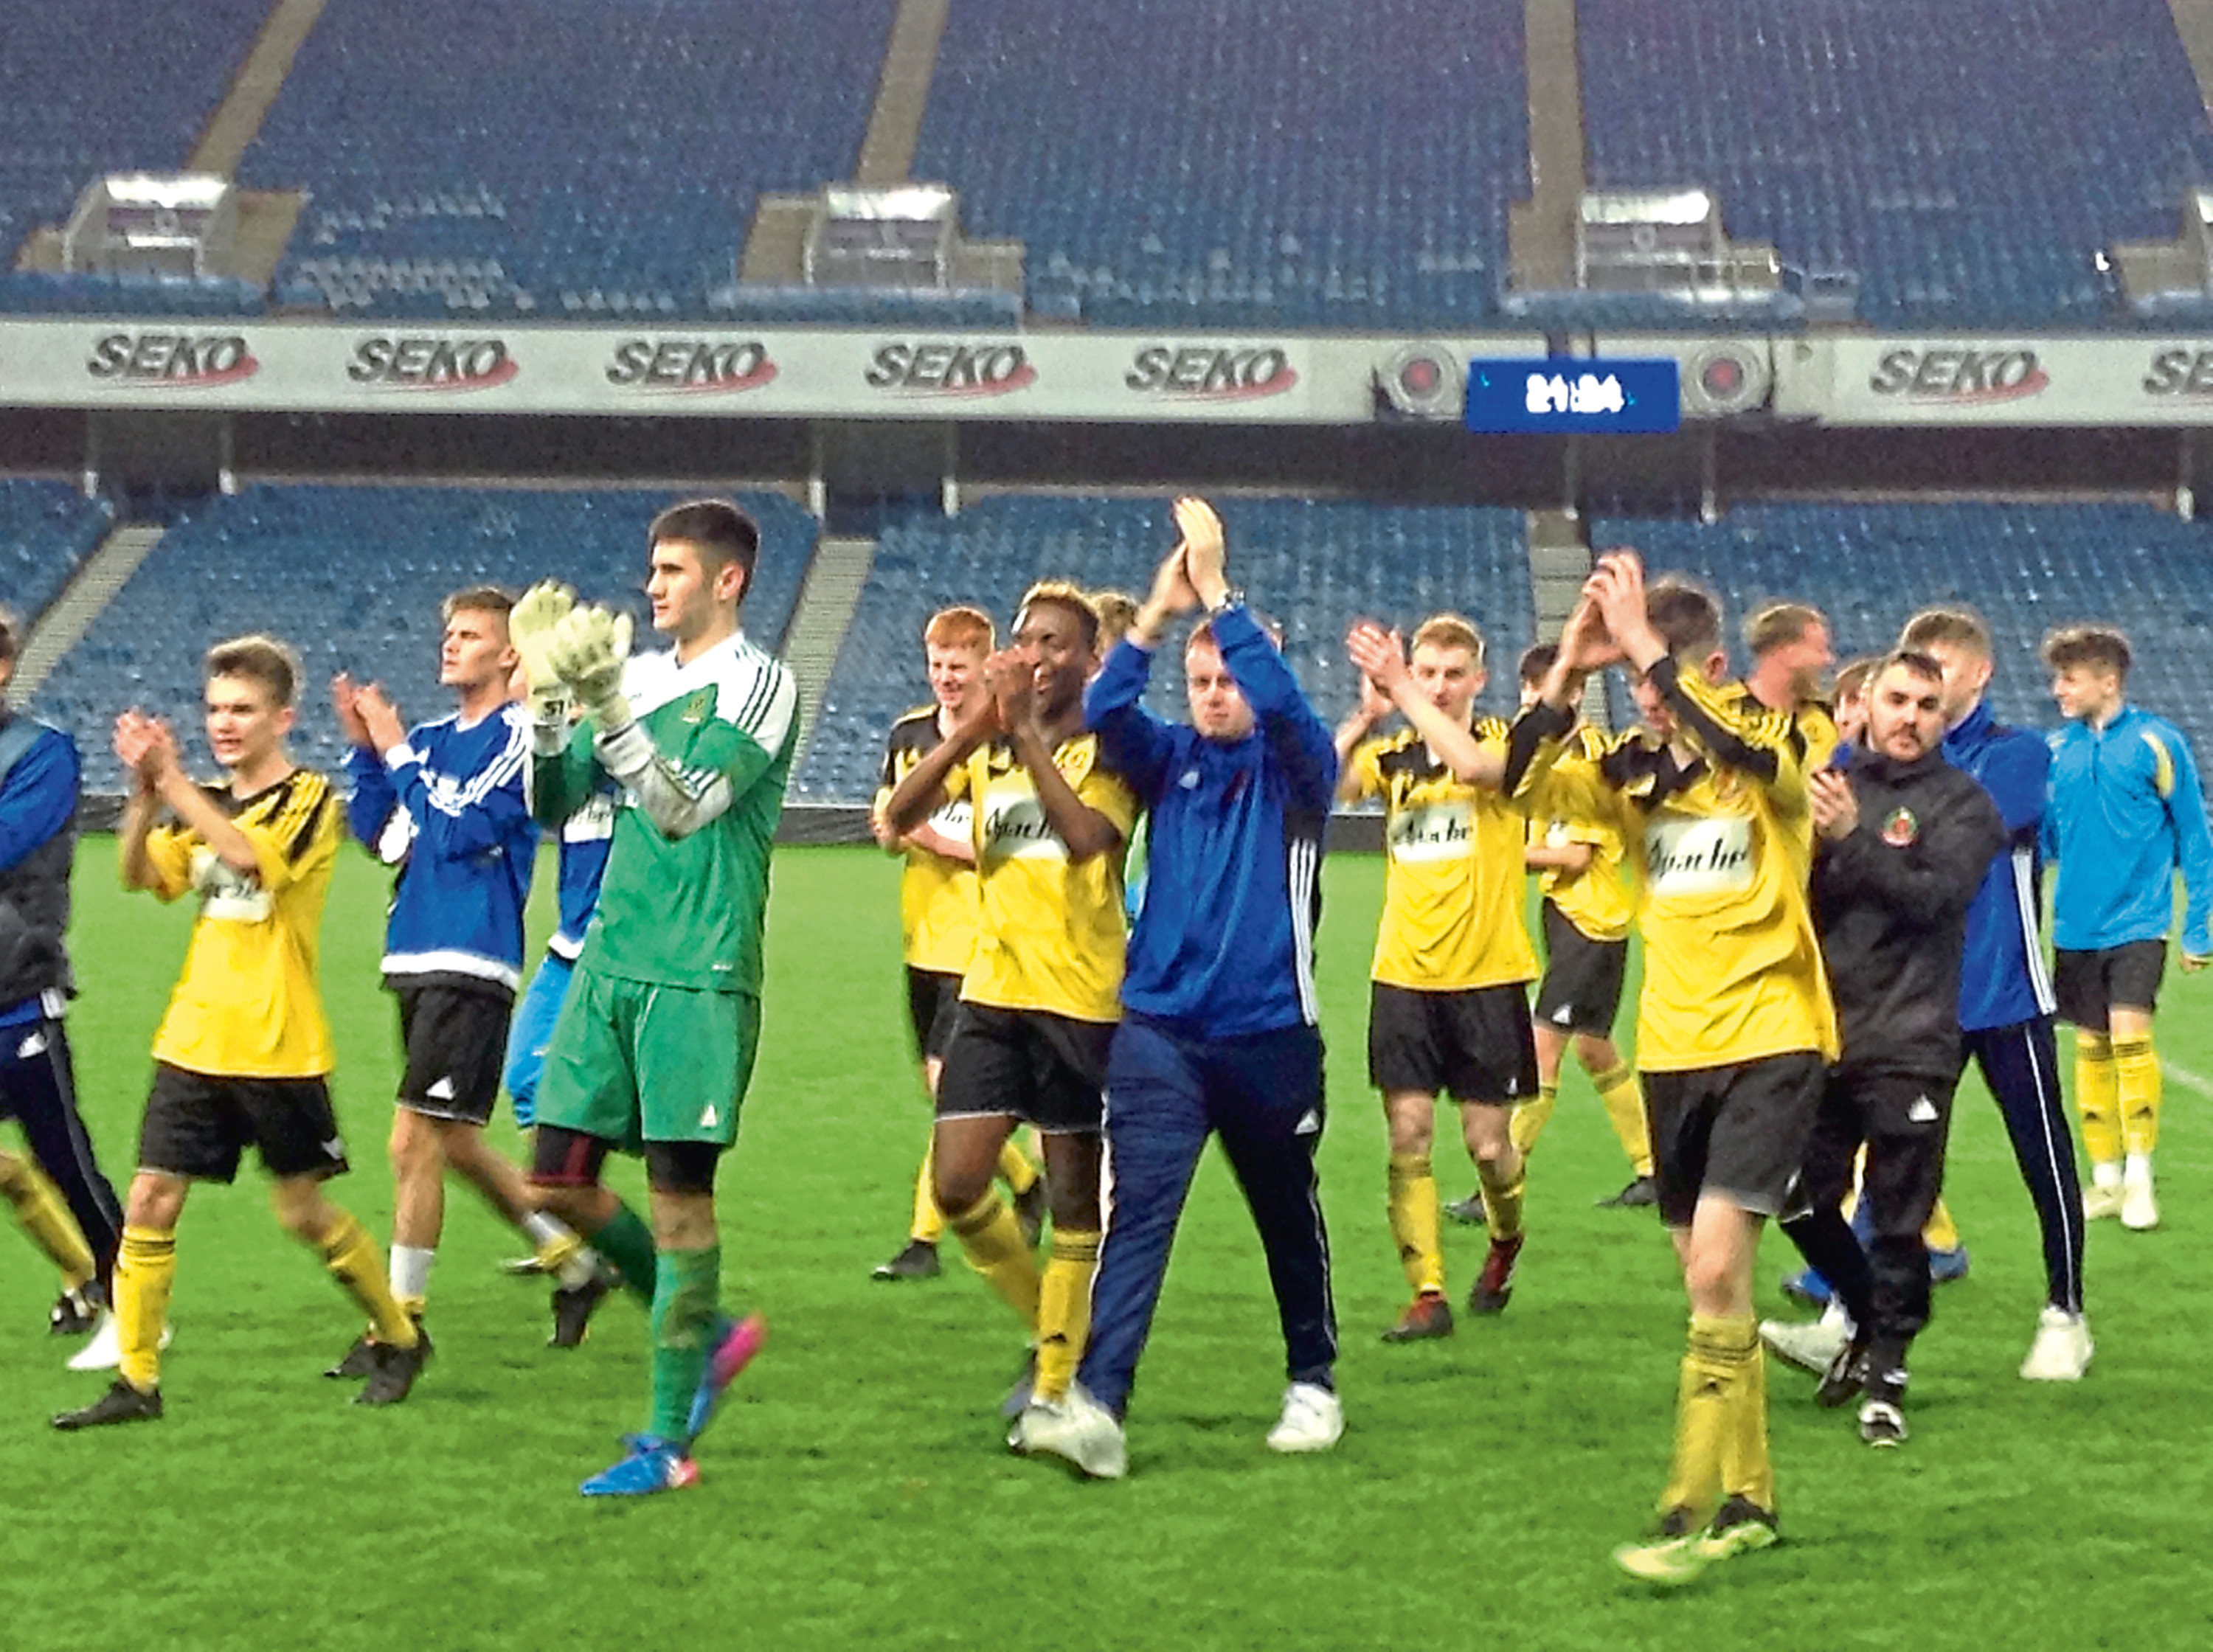 Cove Rangers youth side applaud their fans at Ibrox.